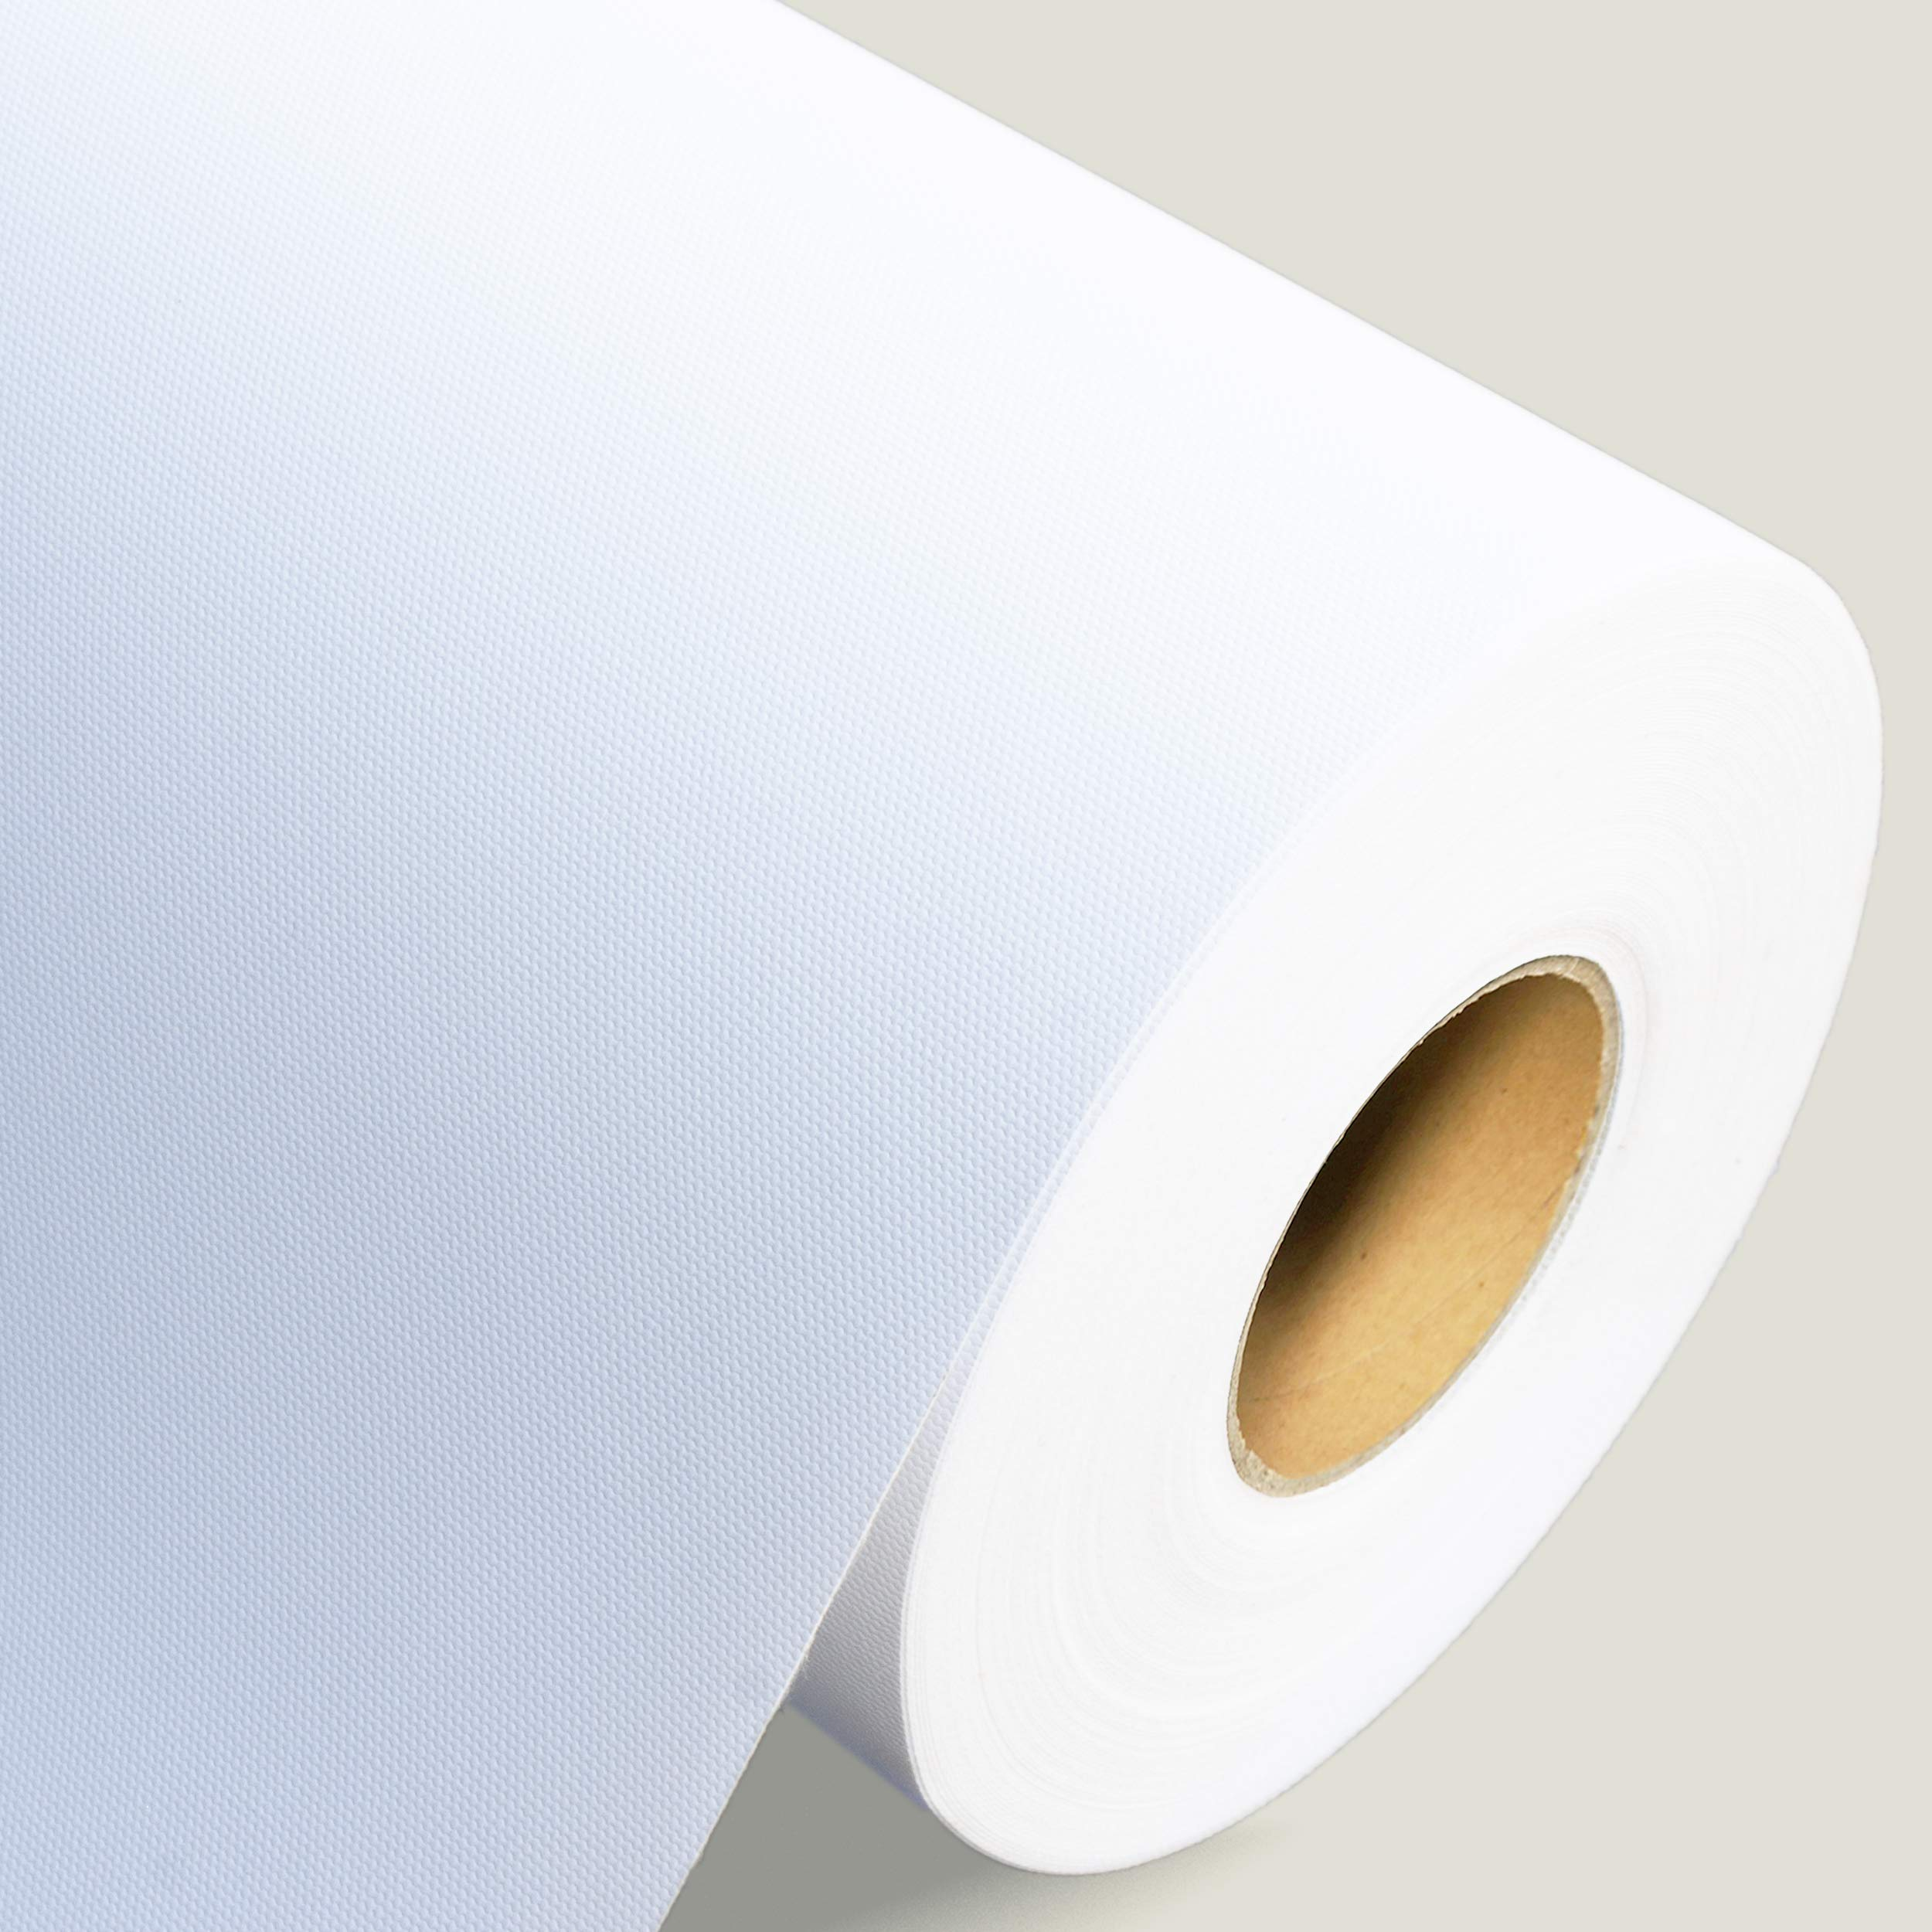 Professional Matte Canvas Roll for Epson Canon HP Inkjet Printer, 24 Inch x 100 Feet, Wide Format 290gsm Surface Polyester Thick Canvas by P&L ART.